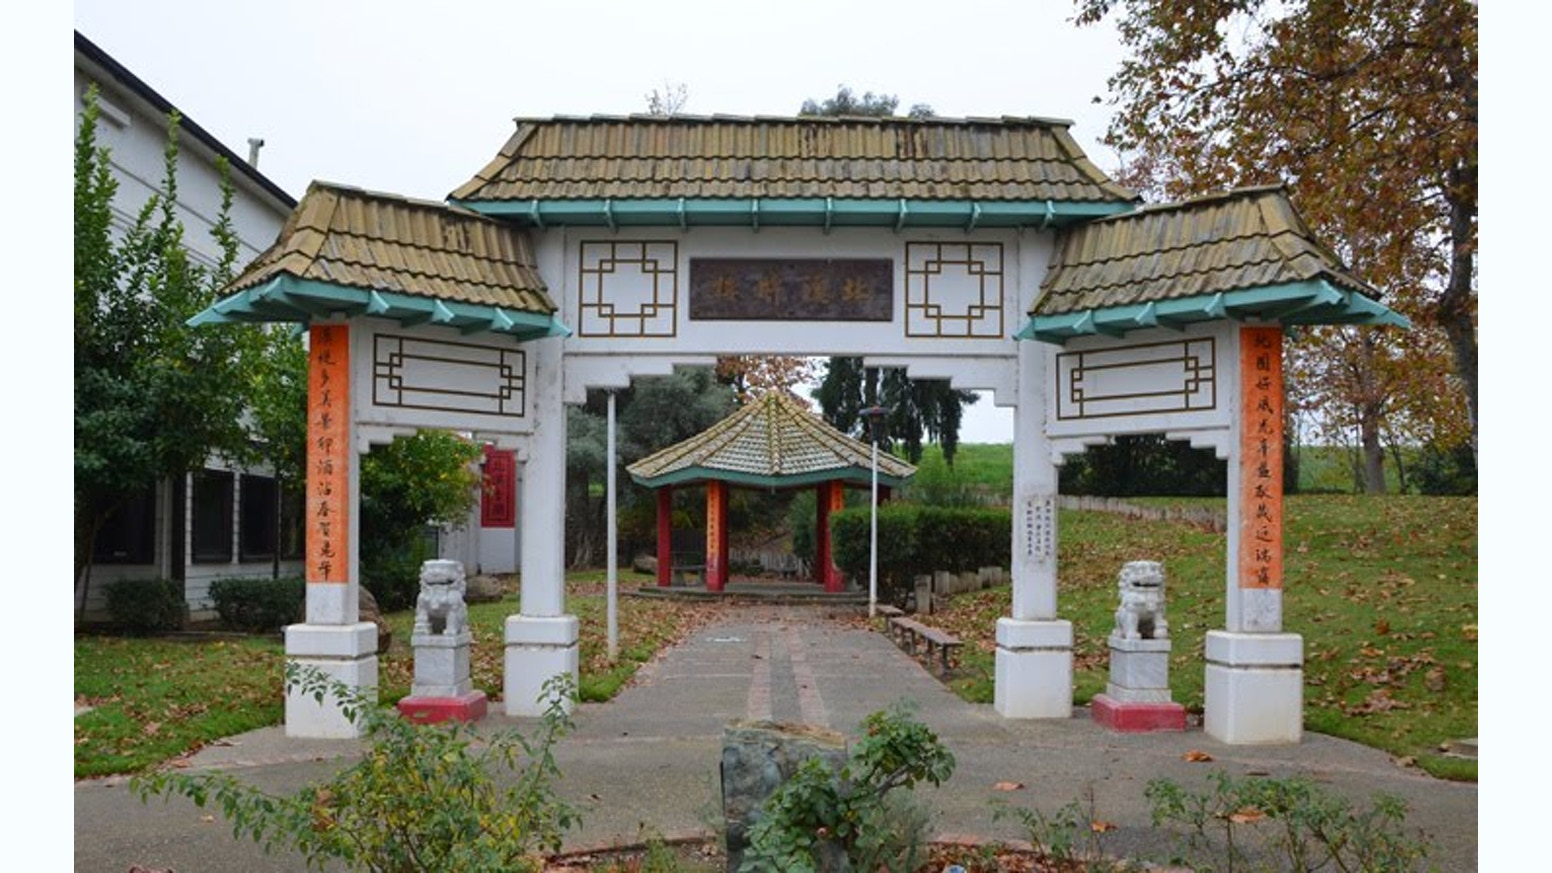 Bok kai temple museum by bok kai temple museum kickstarter for Asian cuisine marysville ca